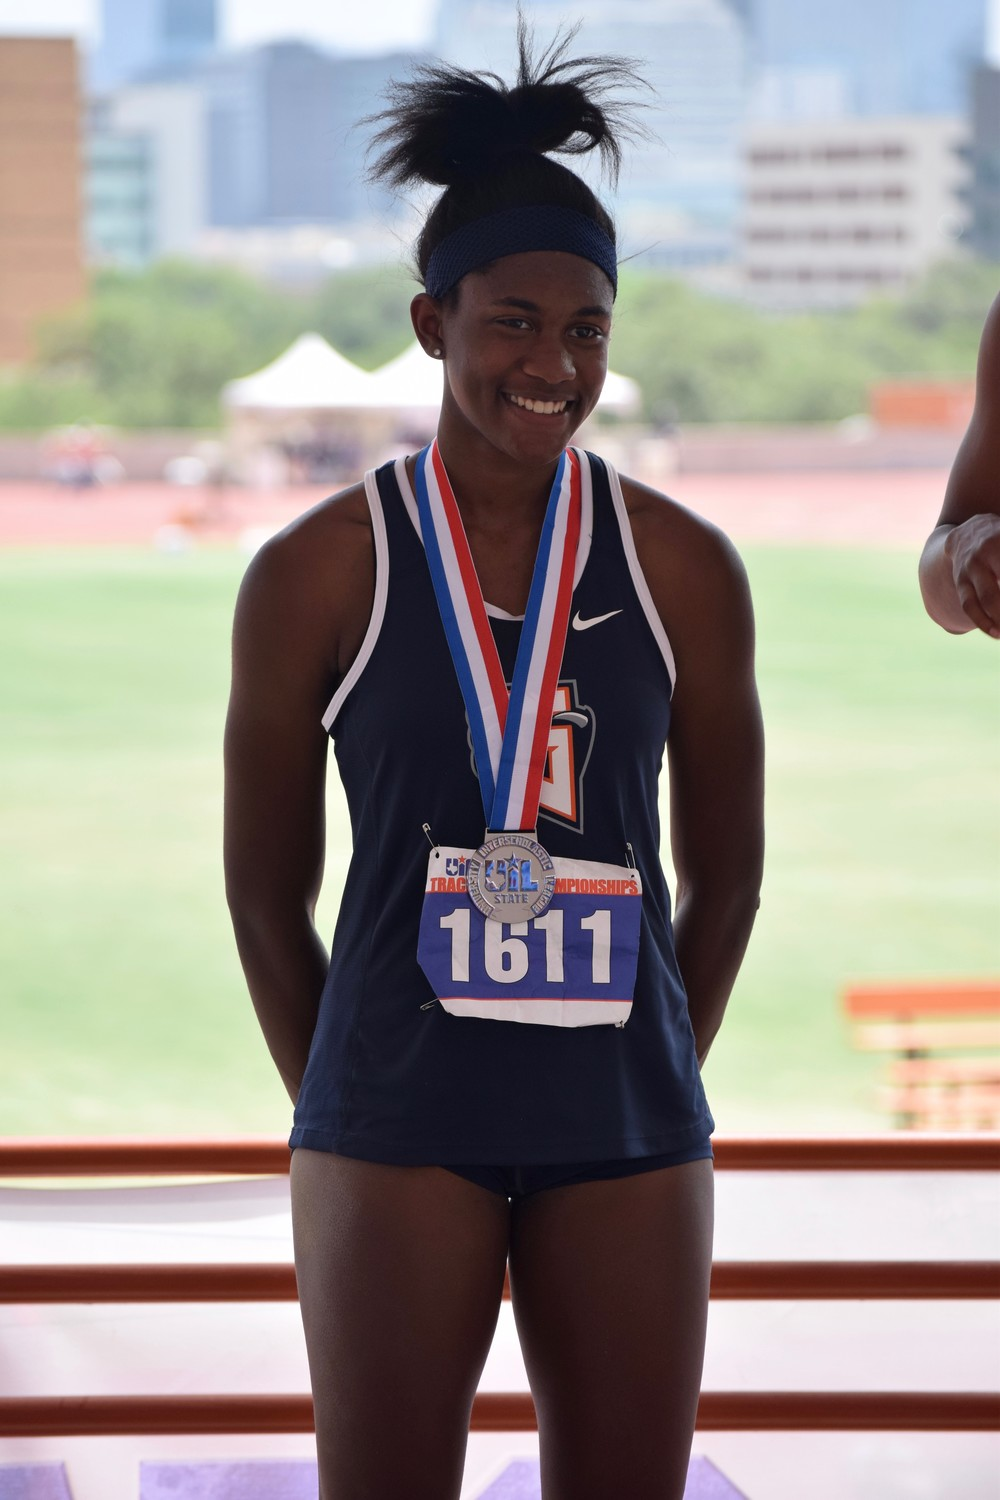 The two medals Gaby Thomas won at the State Track & Field meet last weekend were the first two in Glenn history.